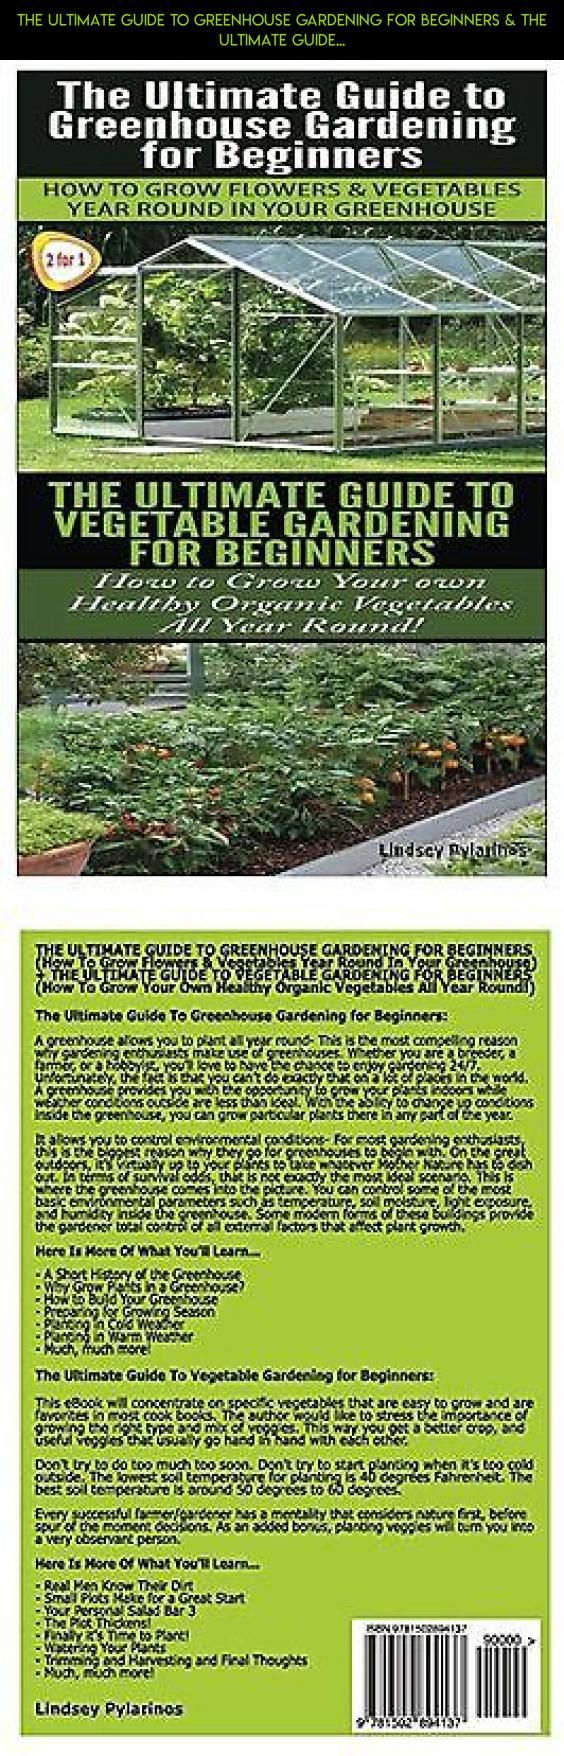 548 best gardening greenhouse images on pinterest greenhouses the ultimate guide to greenhouse gardening for beginners the ultimate guide solutioingenieria Image collections